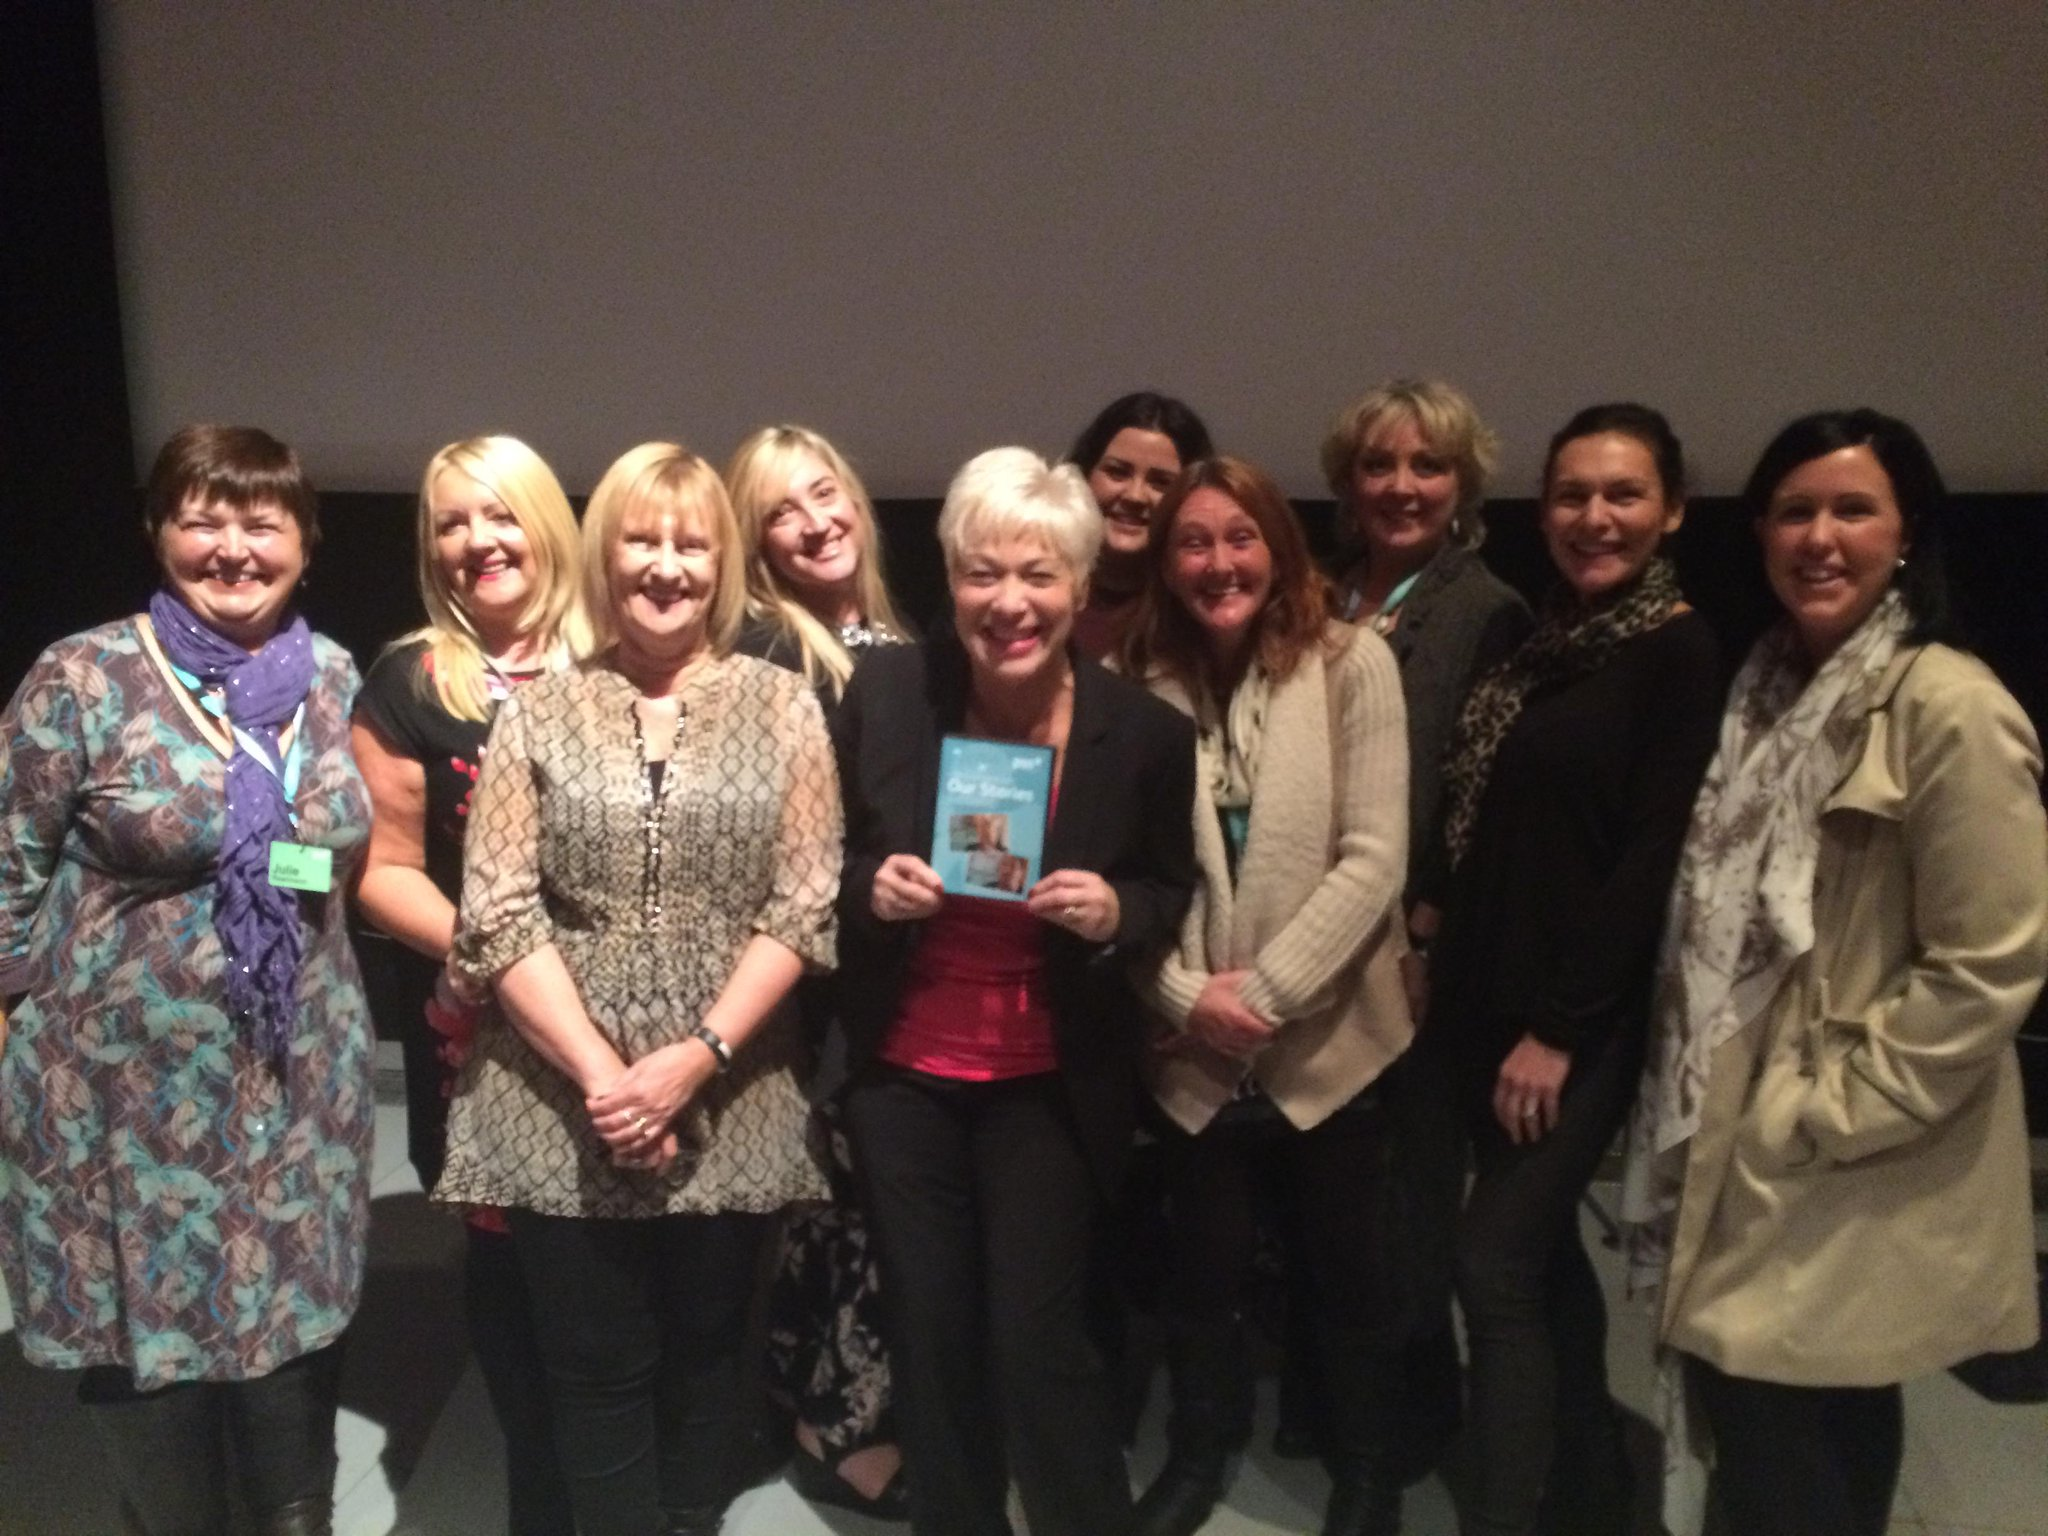 RT @paulinemc2: @psspndproject DVD launch. Our team and the lovely @realdenisewelch yesterday xxx http://t.co/GEDDgxuInL